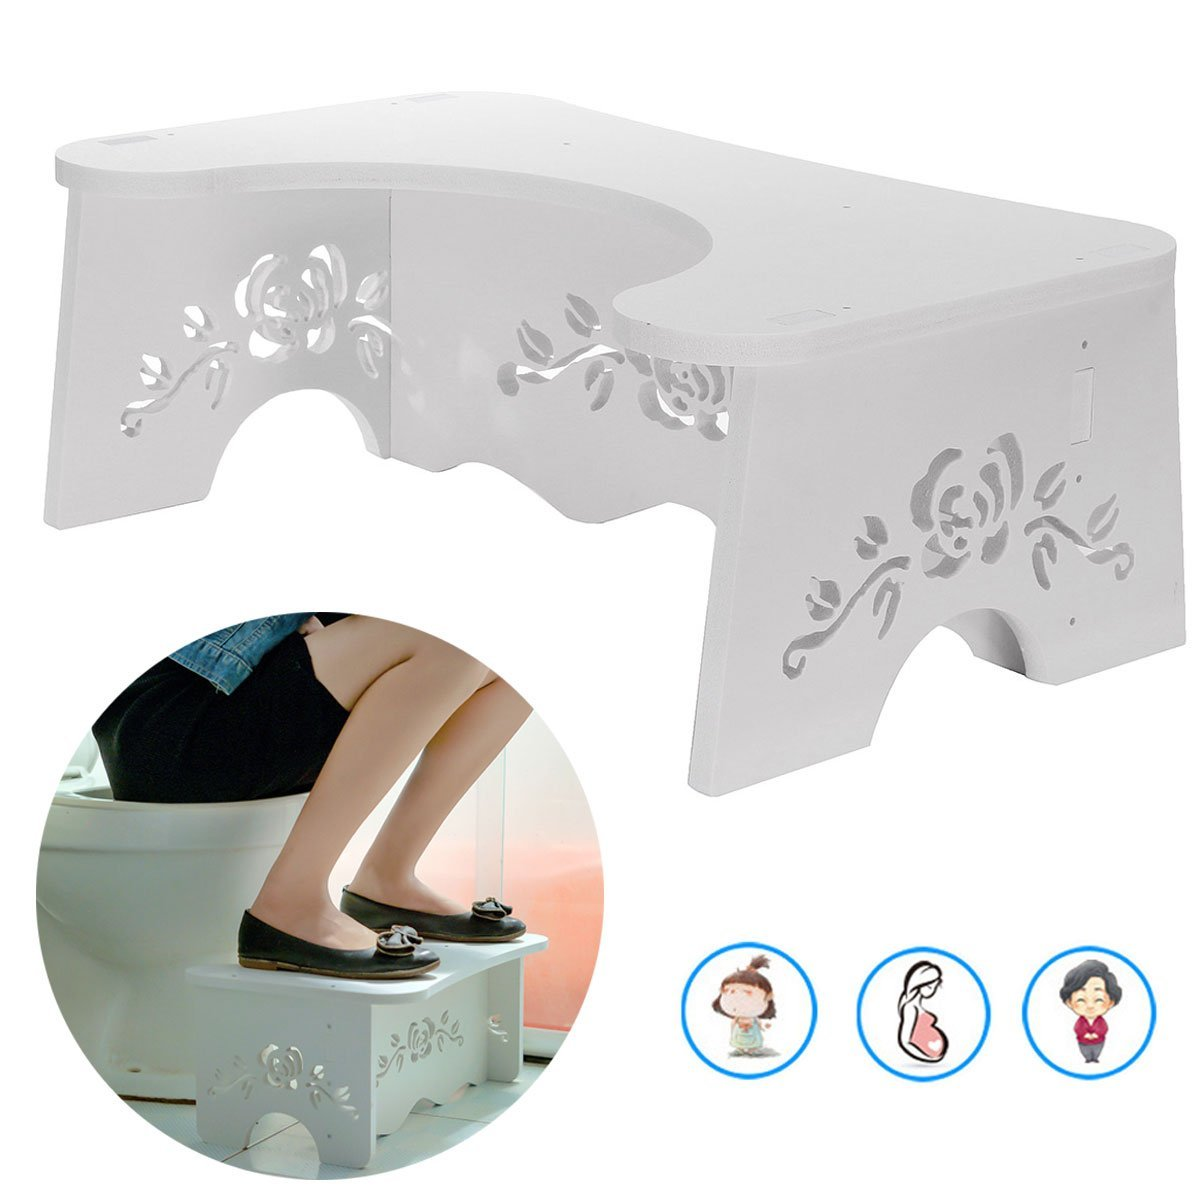 Astonishing Cheap Constipation Toilet Find Constipation Toilet Deals On Cjindustries Chair Design For Home Cjindustriesco